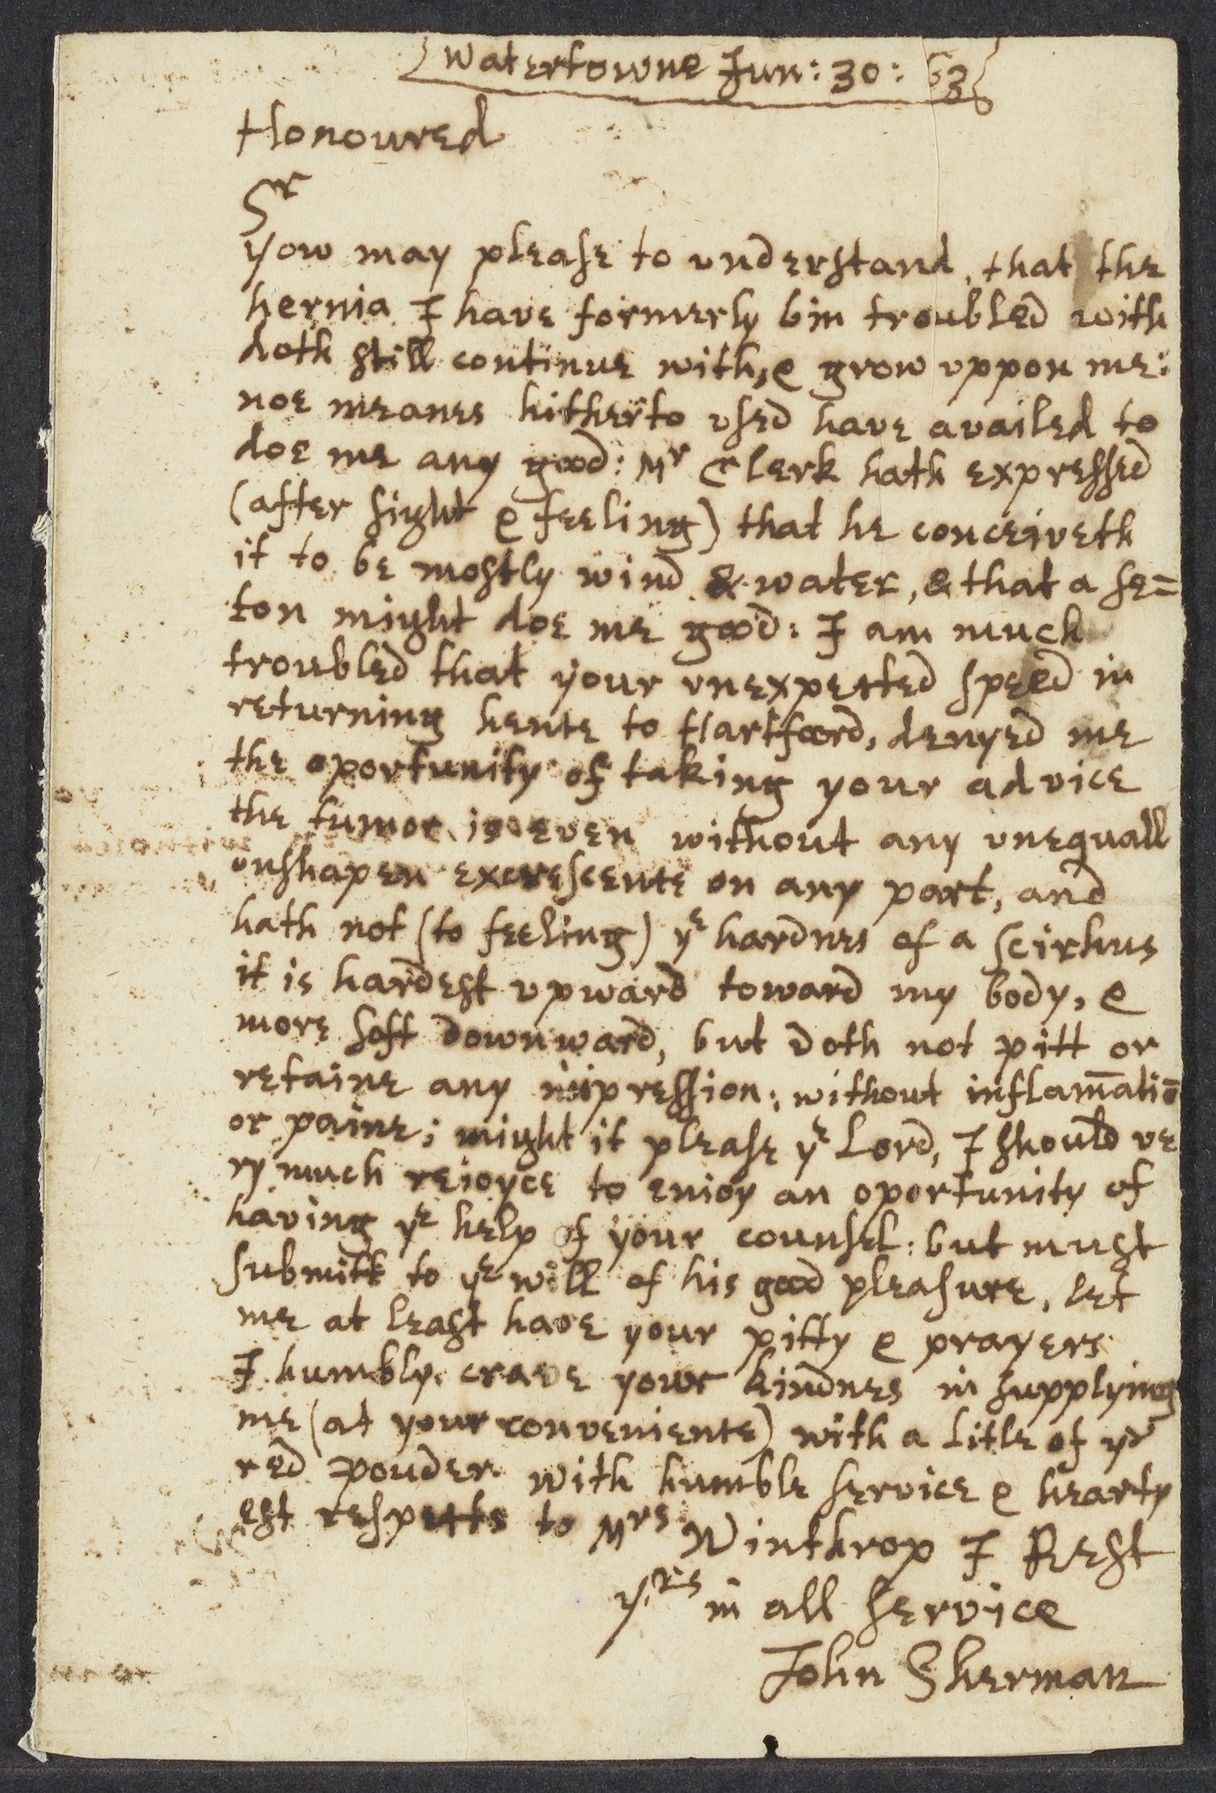 Sherman, John, 1613-1685, autographed letter signed to John Winthrop; Watertown, Mass., 1 side (3 pages), 1663 June 30